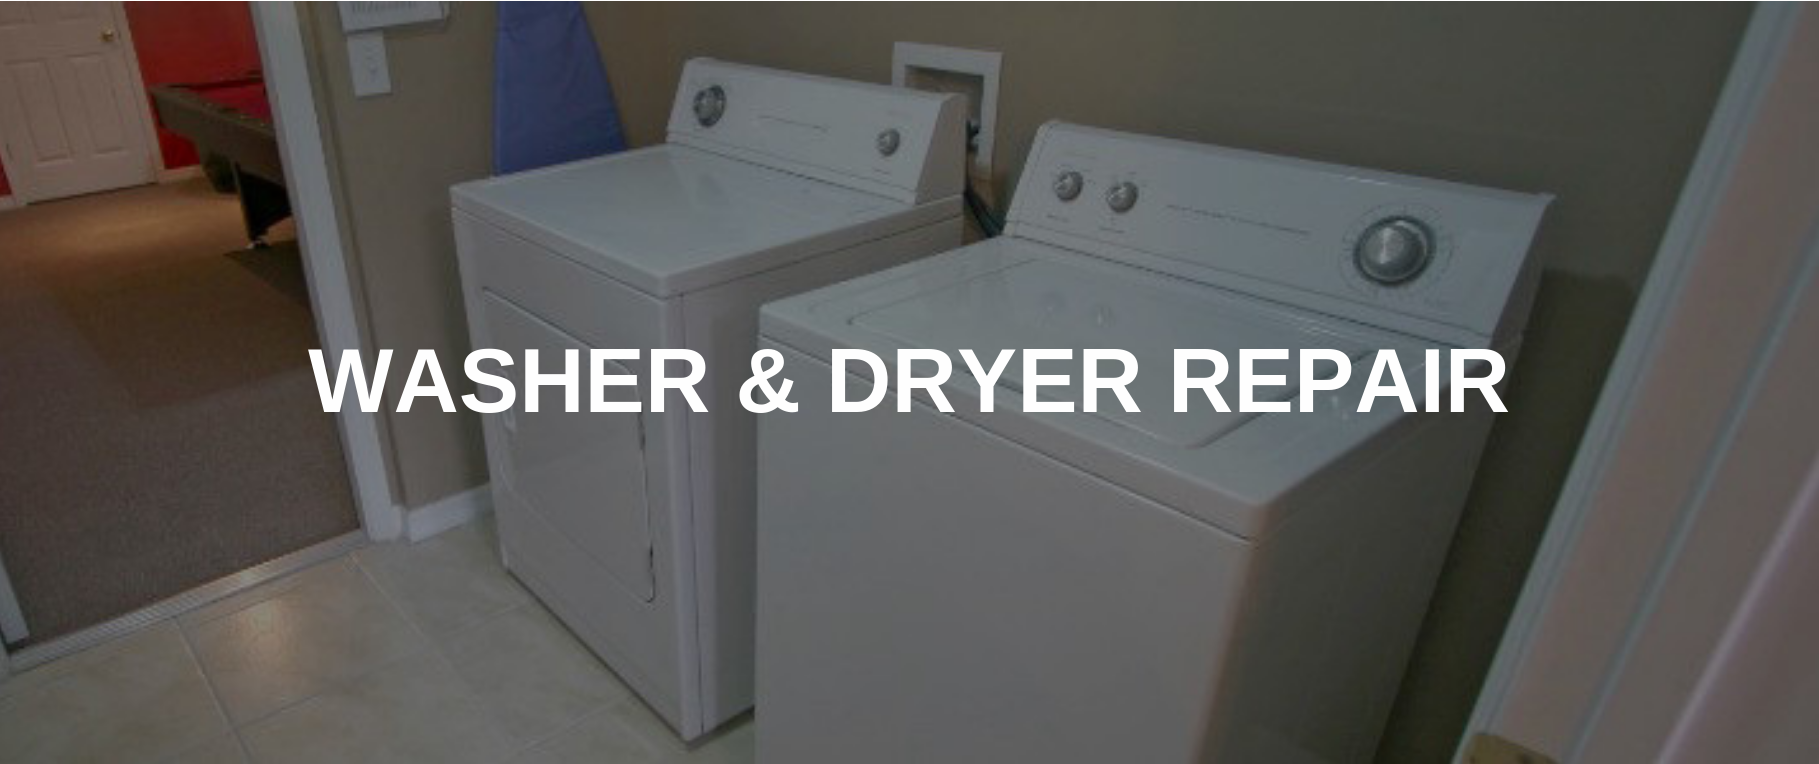 washing machine repair vernon